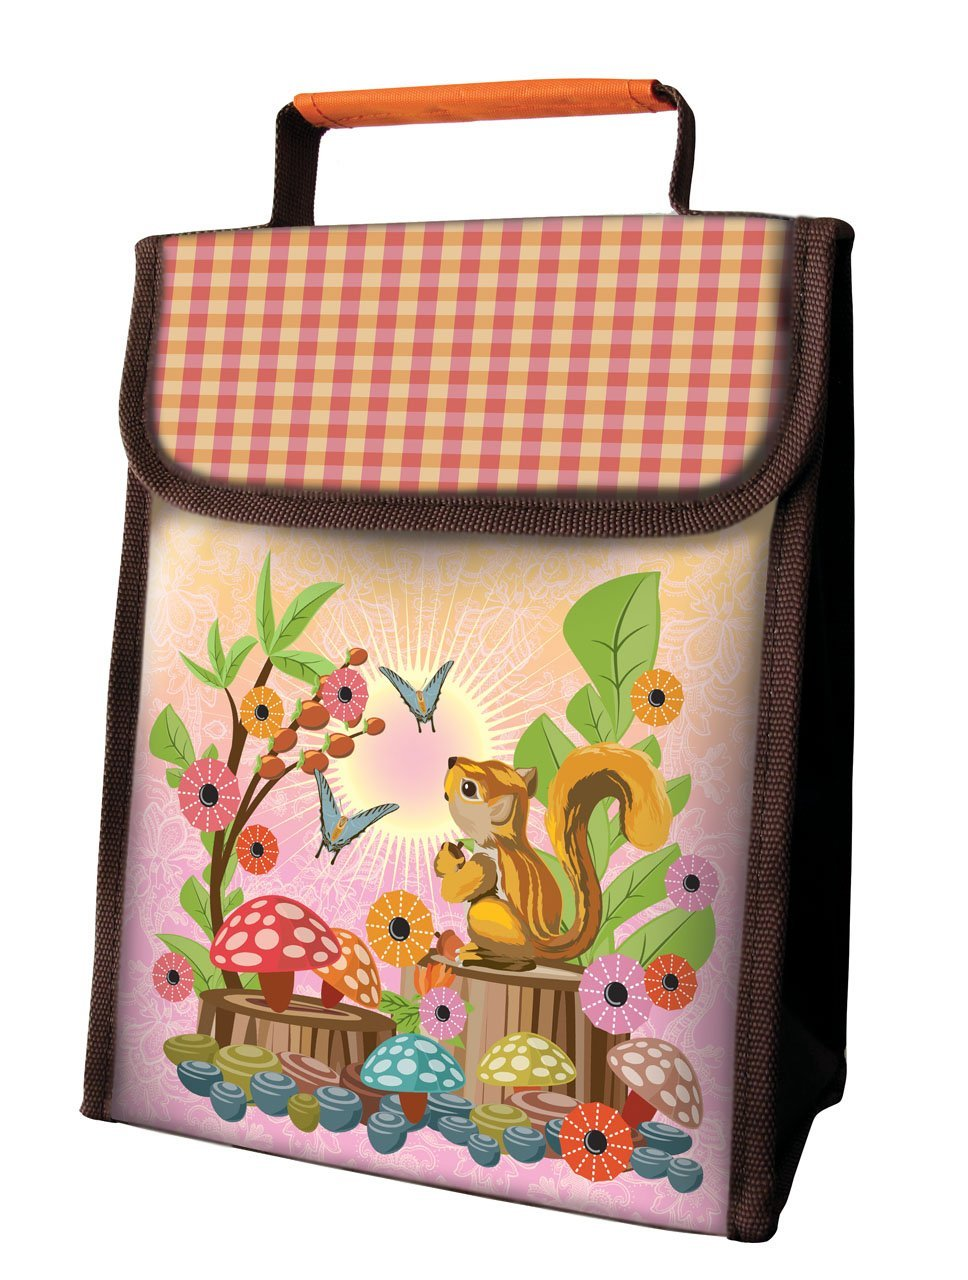 Lunch Sacks, available in Squirrel, Bumblebees, Robots and Rocket Ships $9.99